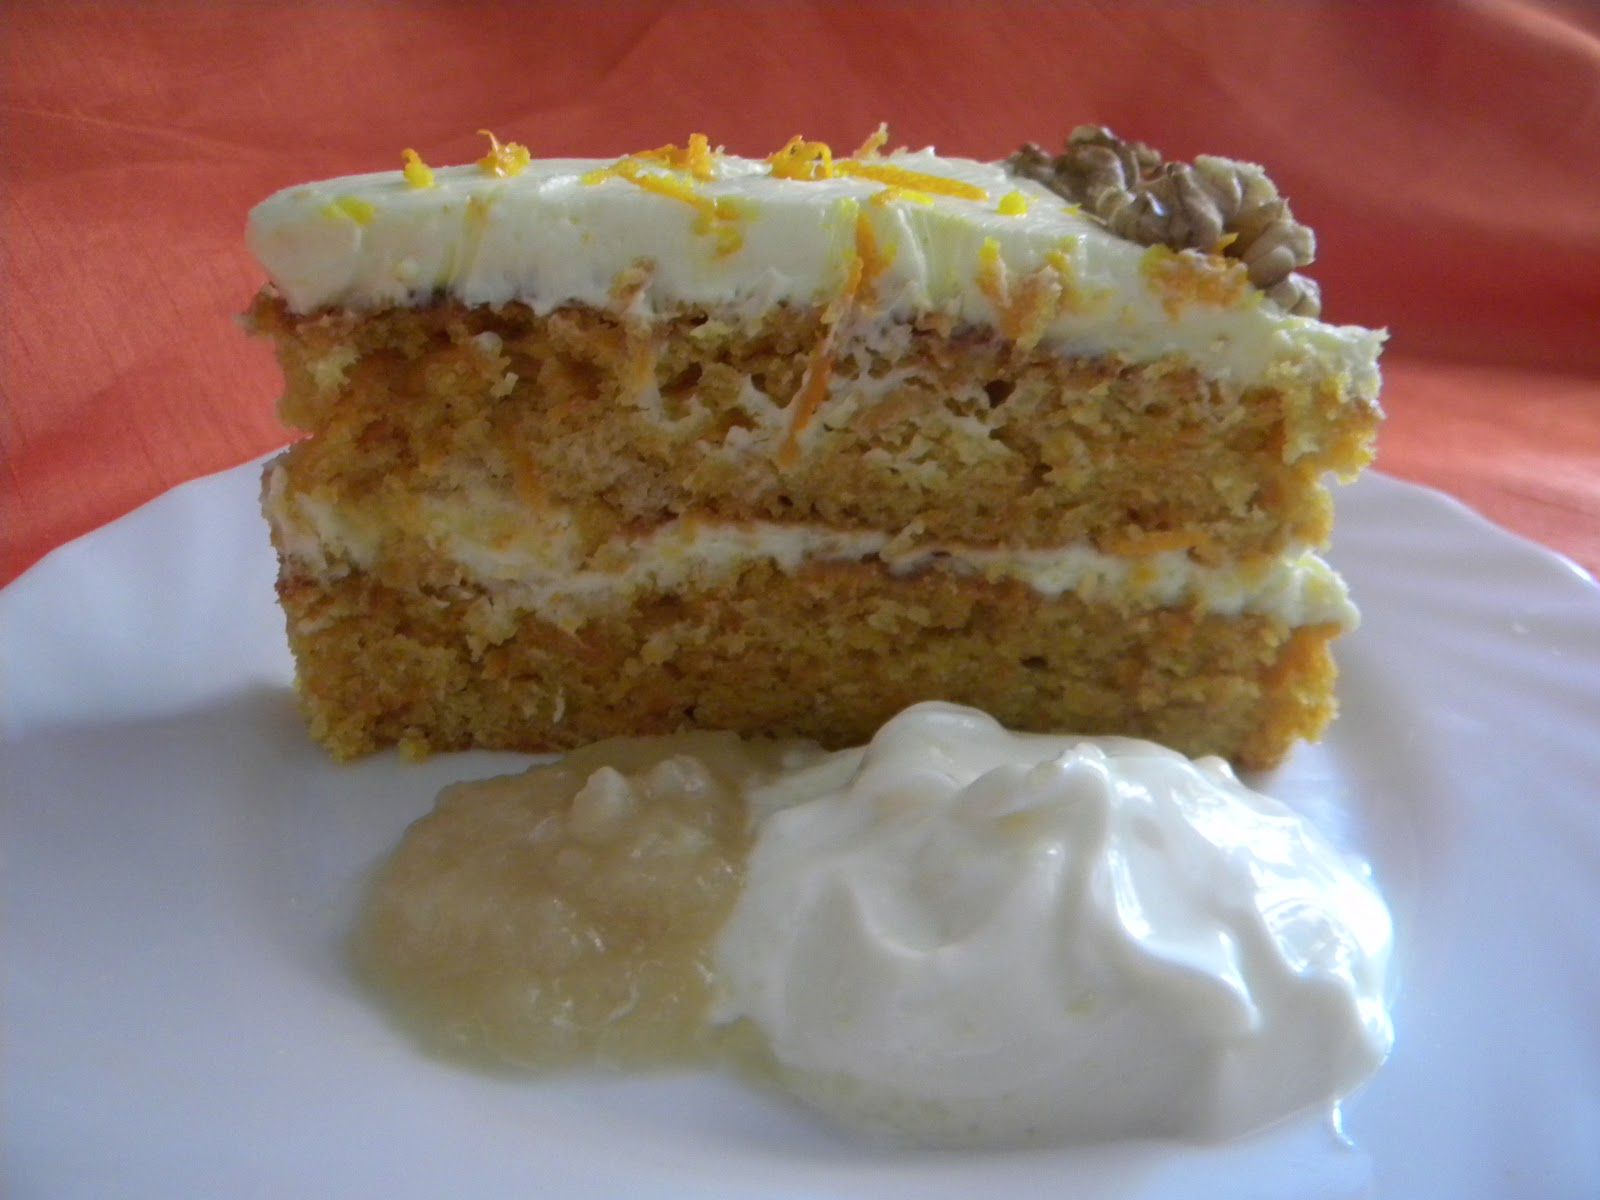 ... Rebecca Mugridge: Moist Carrot and Ginger cake with Orange Icing